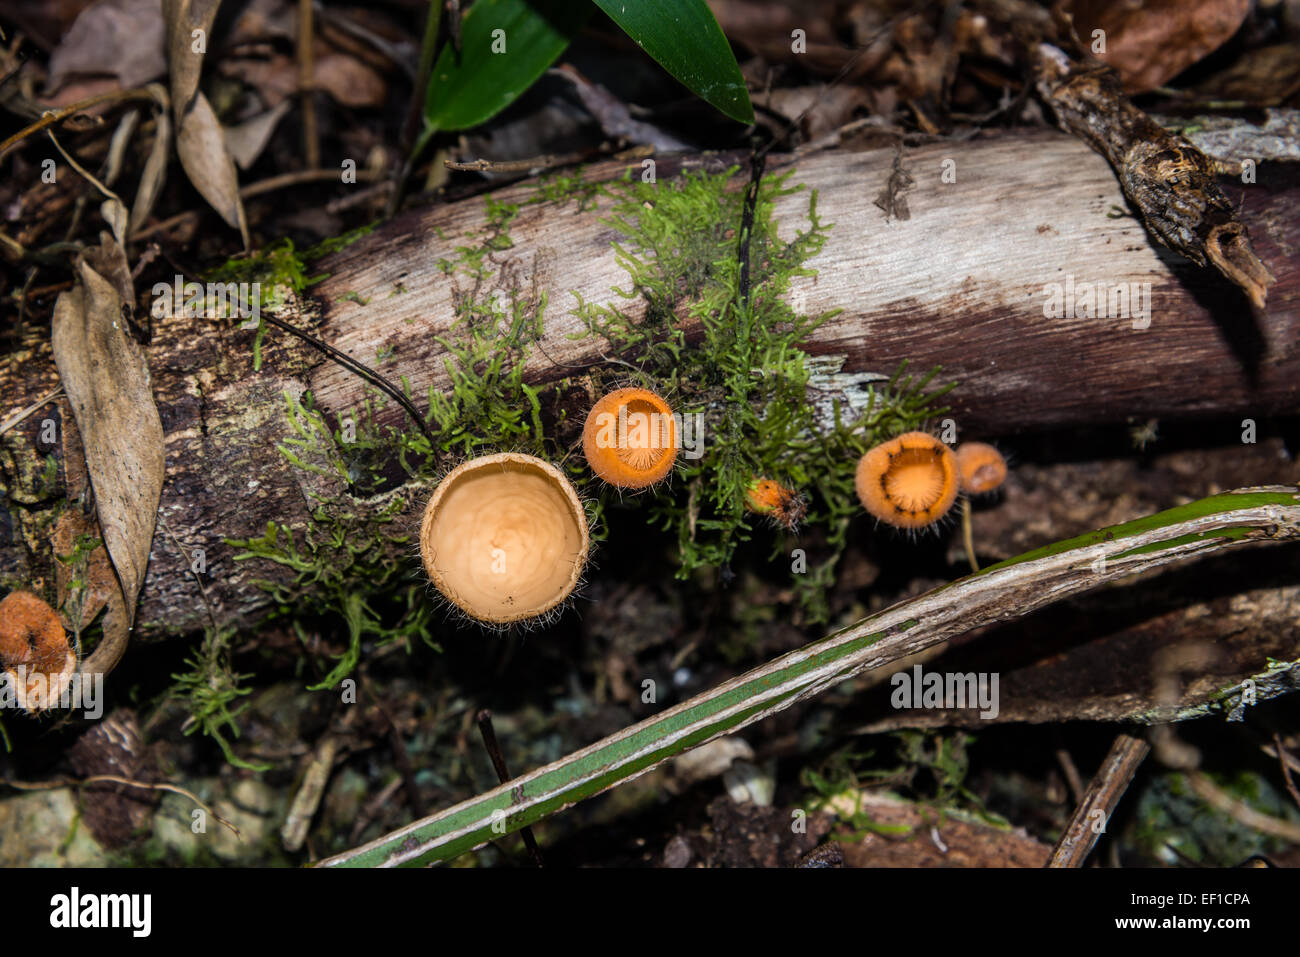 Champaign cup mushrooms in wild. Belize, Central America. - Stock Image